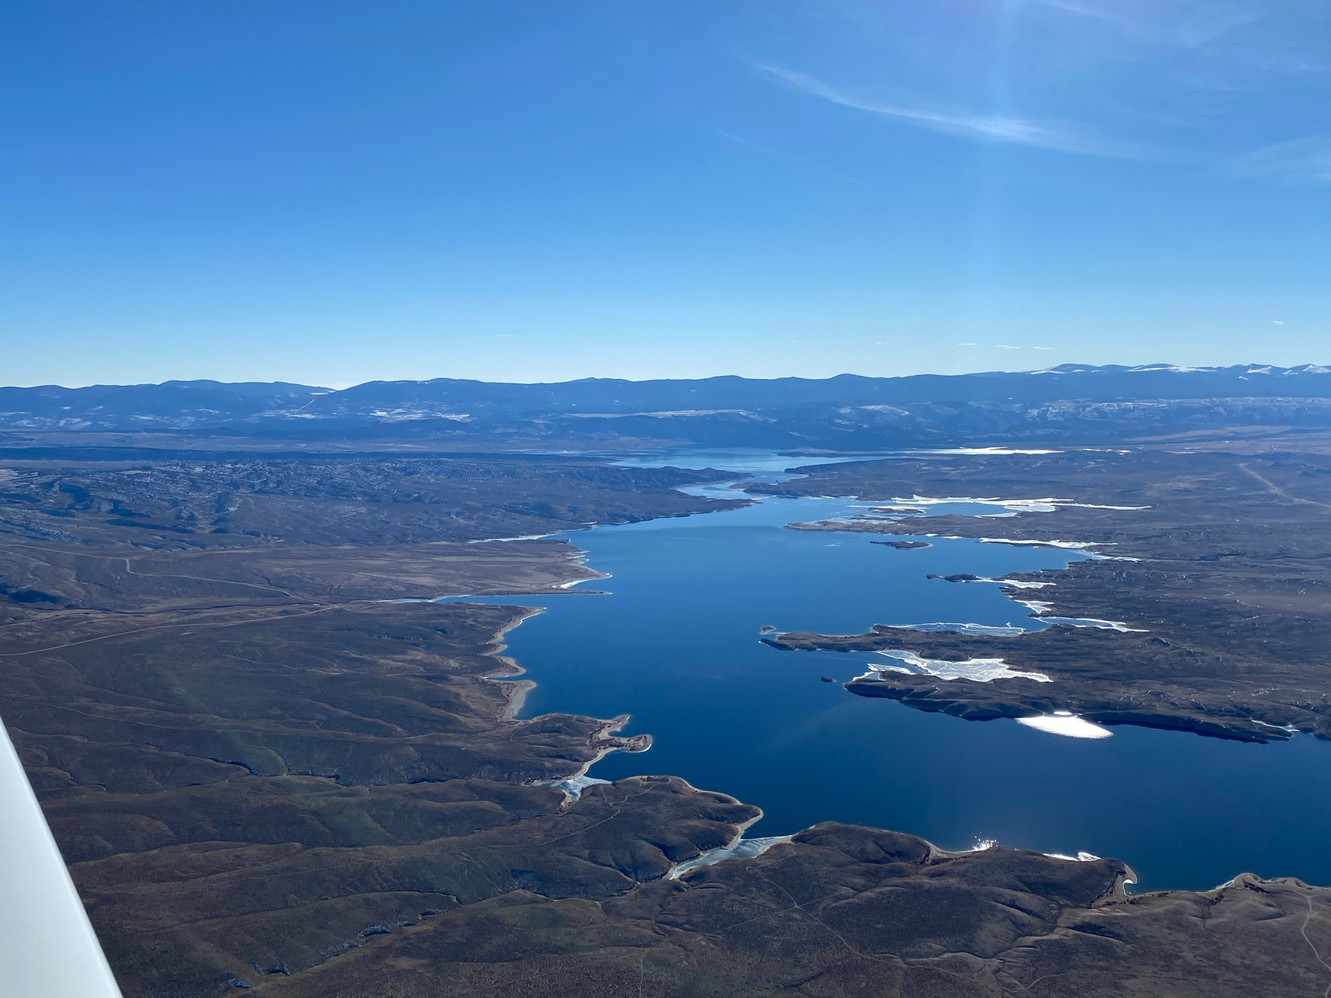 Flaming Gorge from N4294T